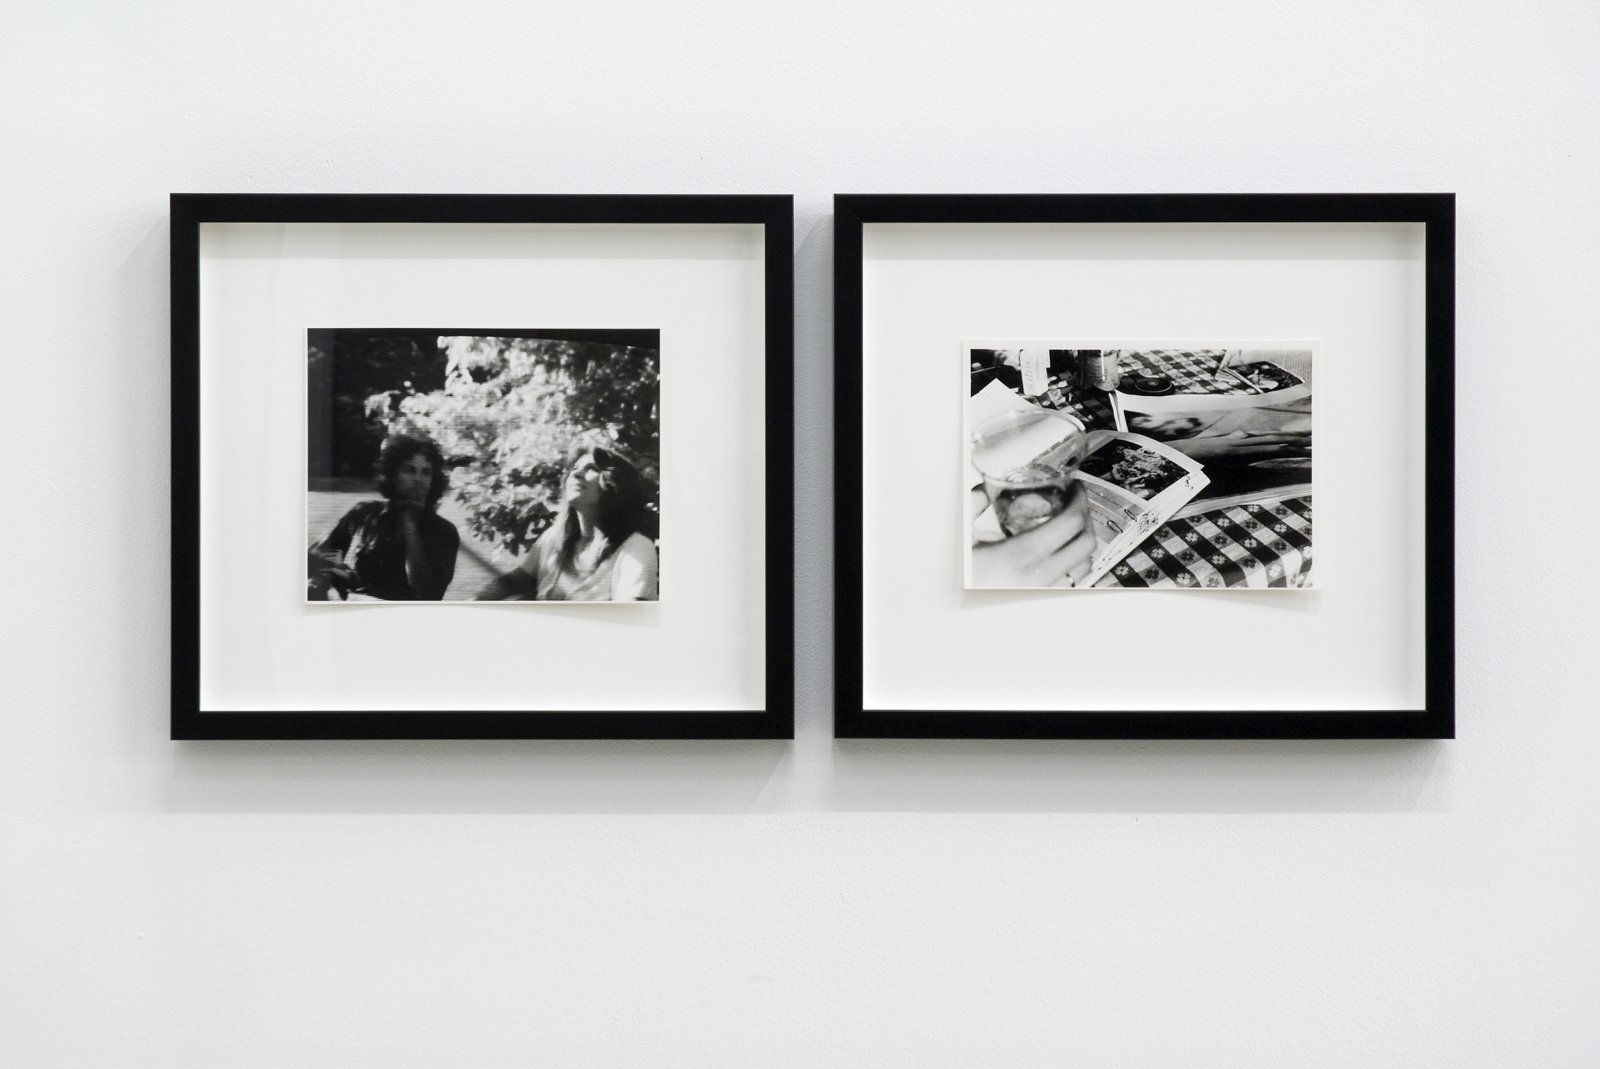 Ian Wallace, Studies for The Summer Script I & II, 1973, 2 black and white photographs, each 15 x 17 in. (37 x 43 cm)  by Ian Wallace